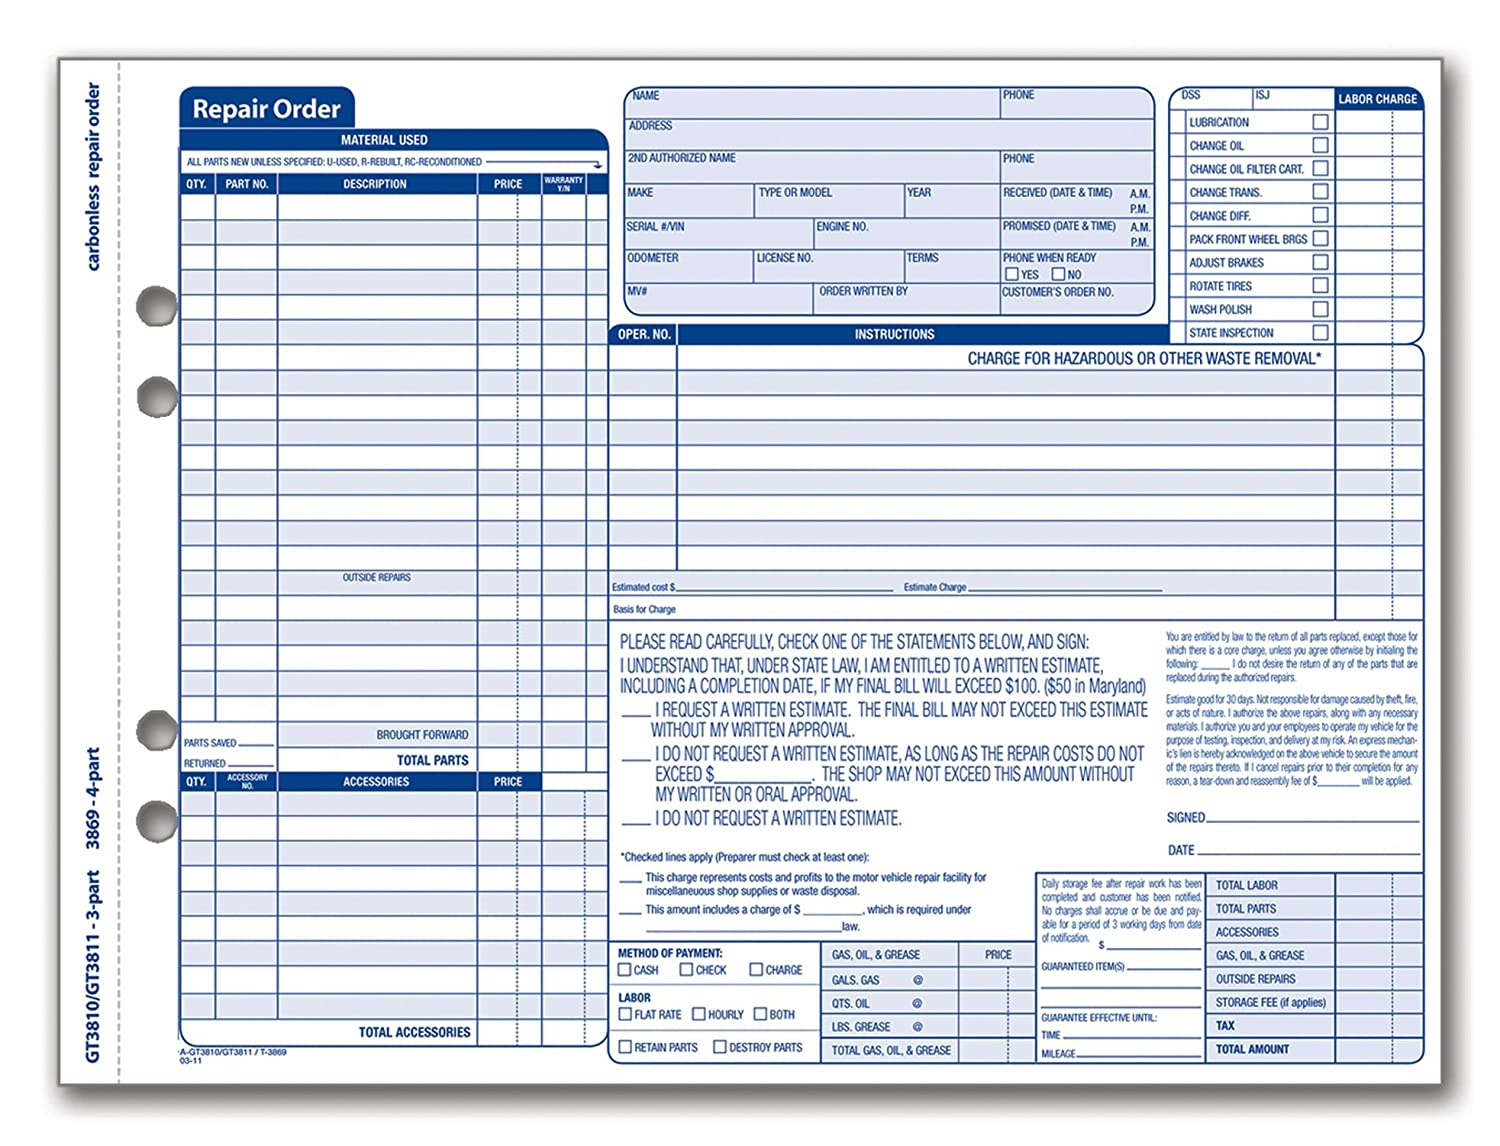 Amazoncom Adams Garage Repair Order Forms X Inches - Repair invoice template free online lighting stores